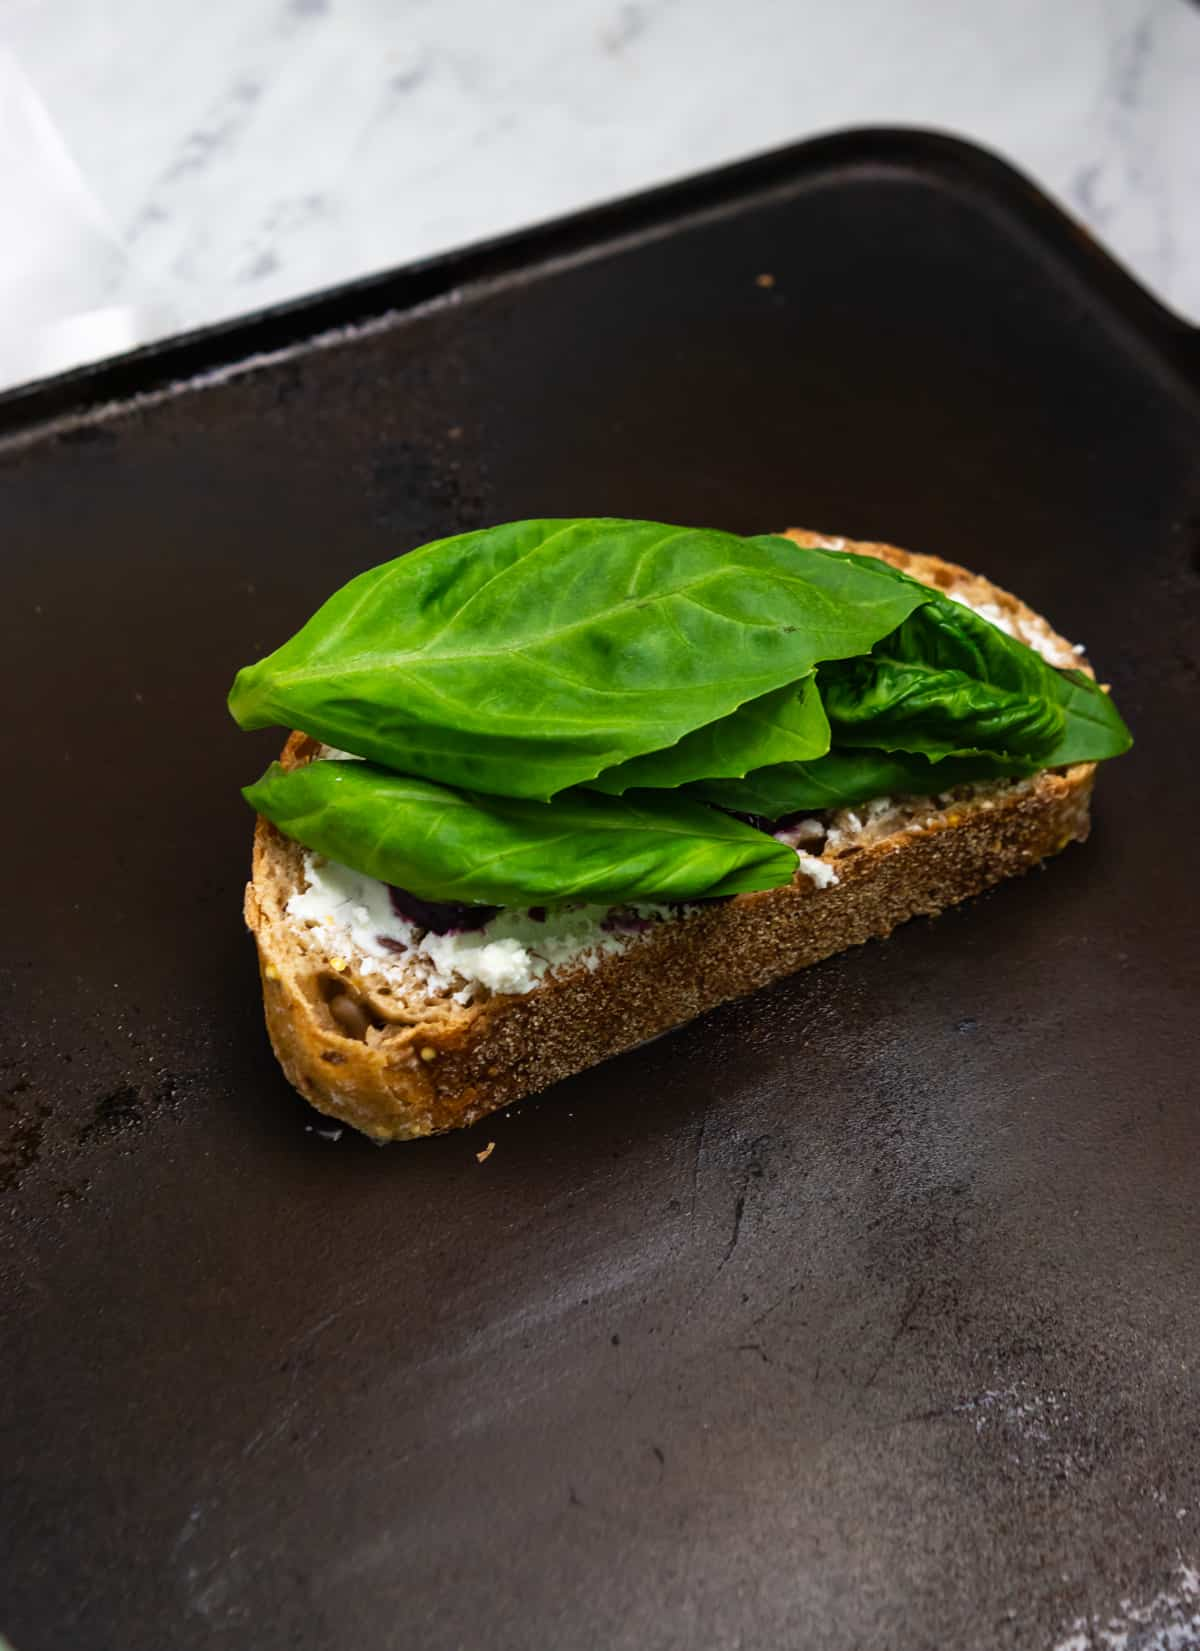 Basil on grilled cheese sandwich on skillet.